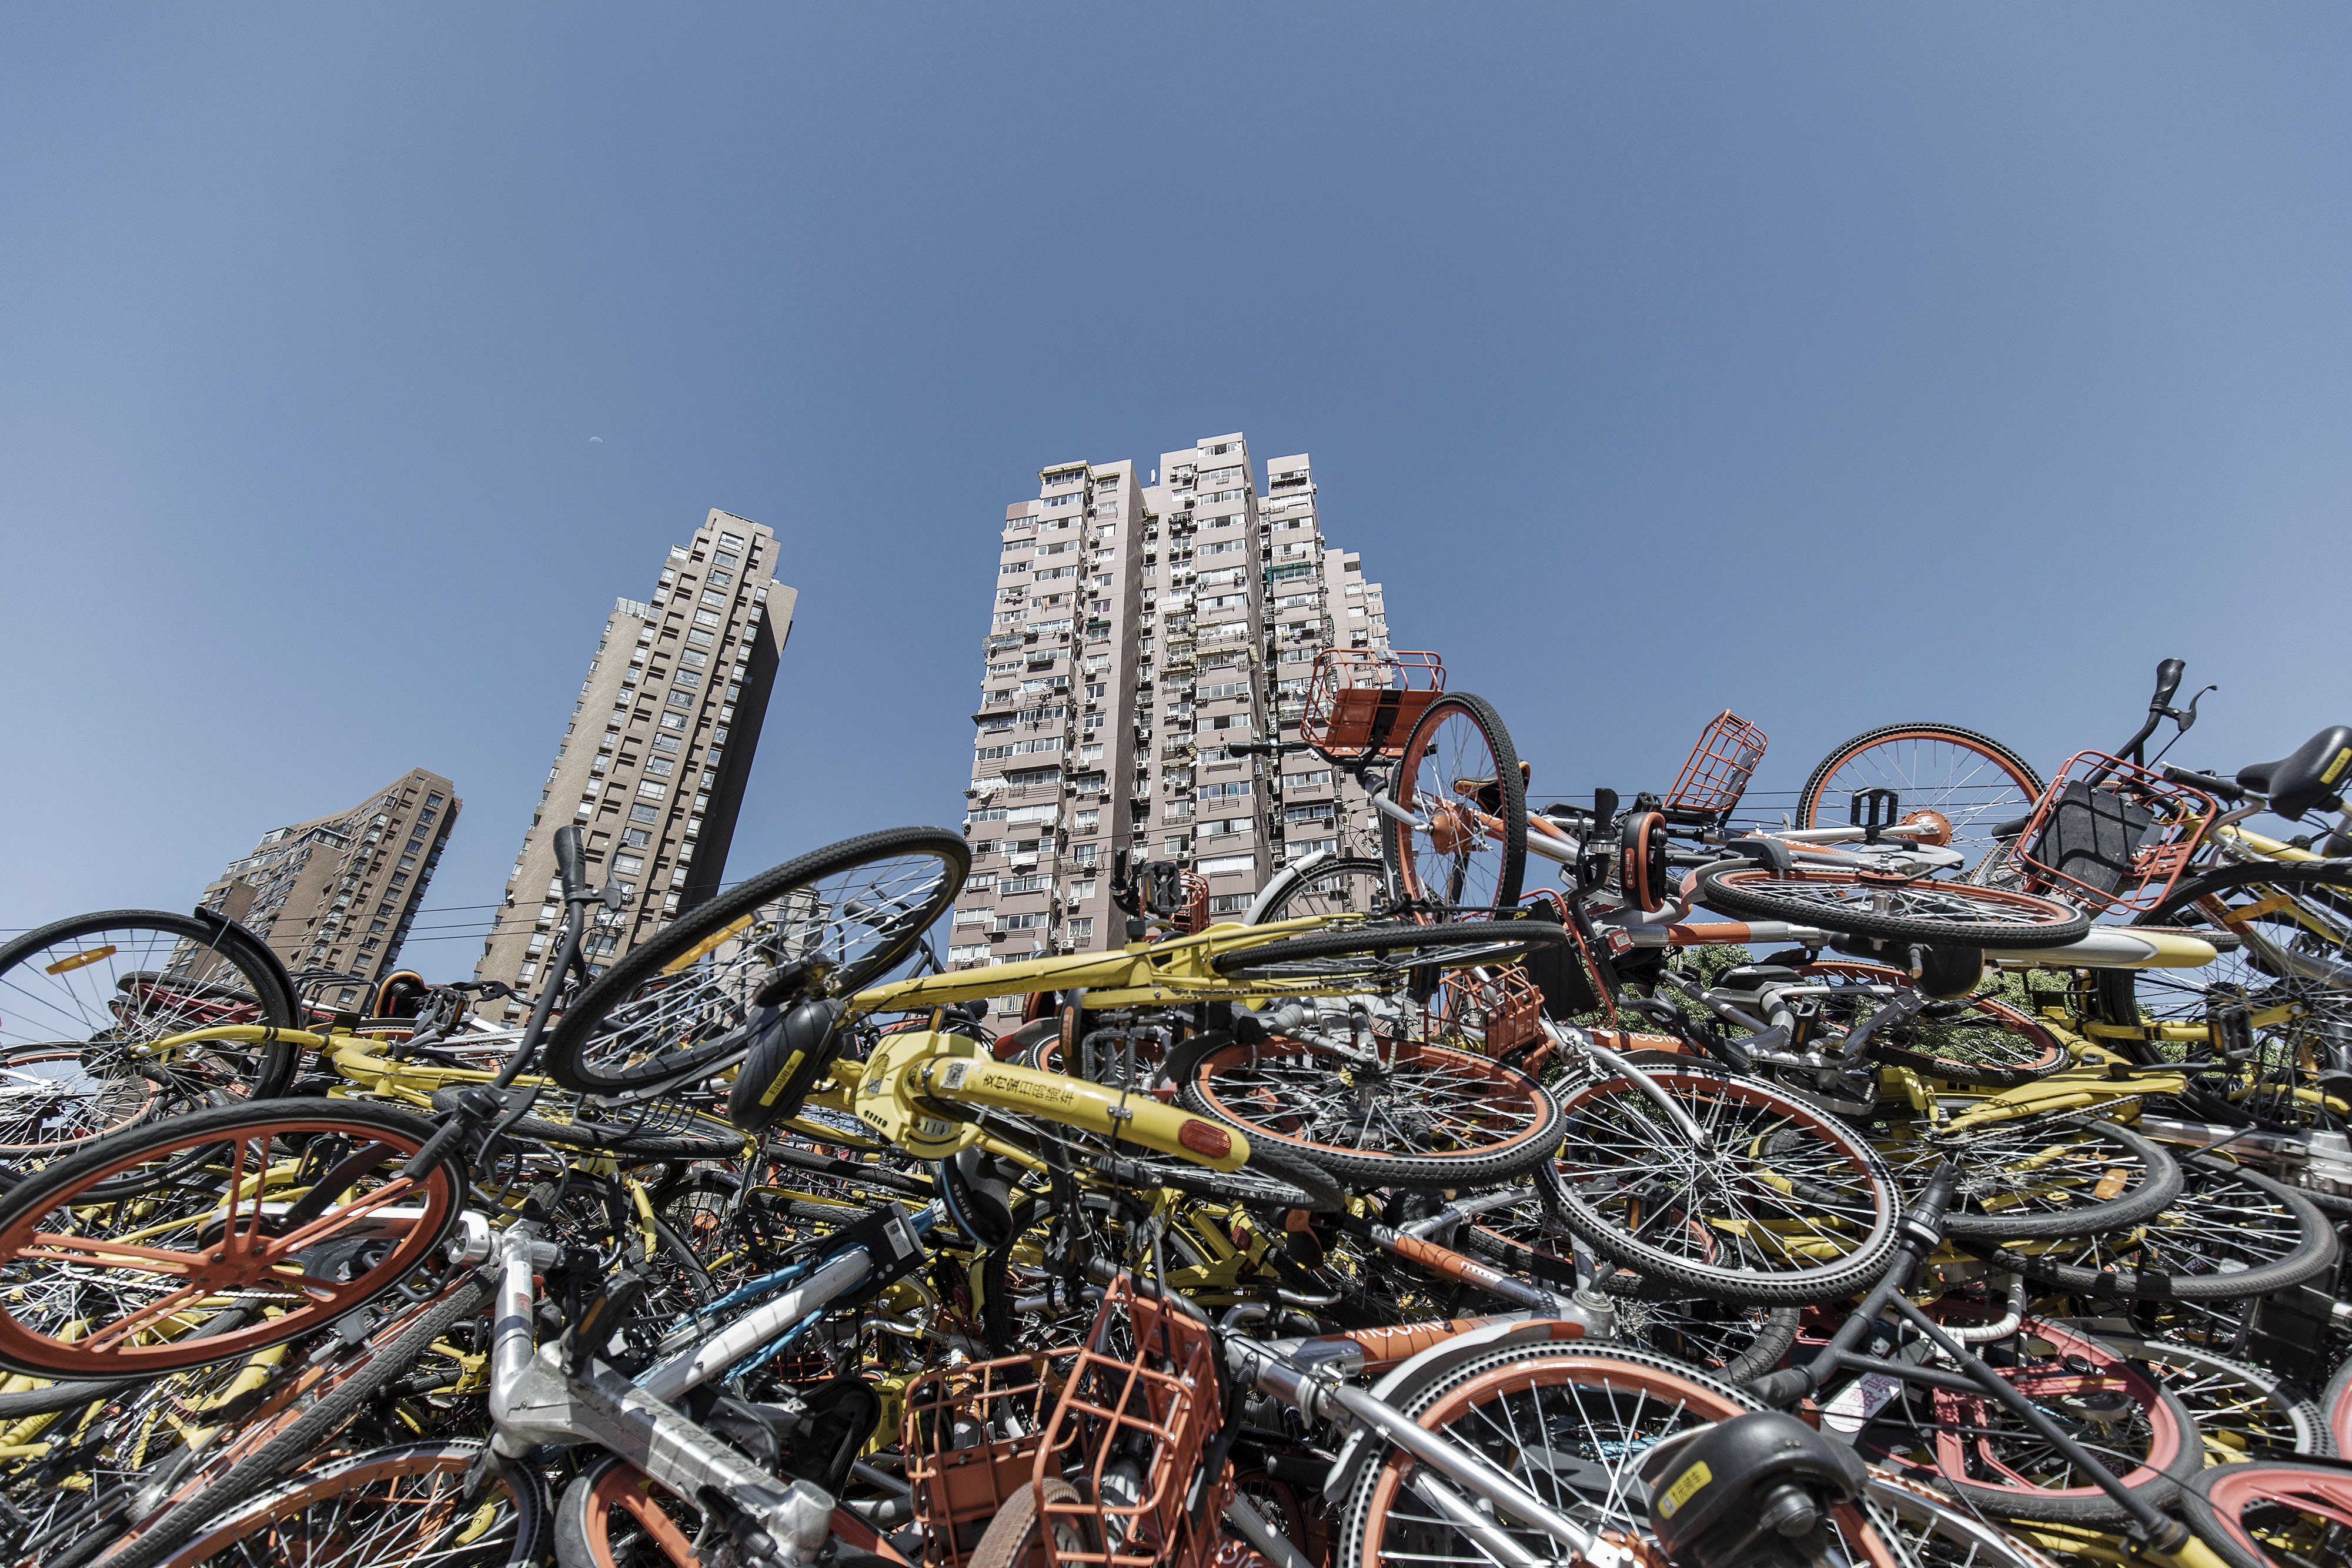 Ride-Sharing Bicycles on the Streets of Shanghai